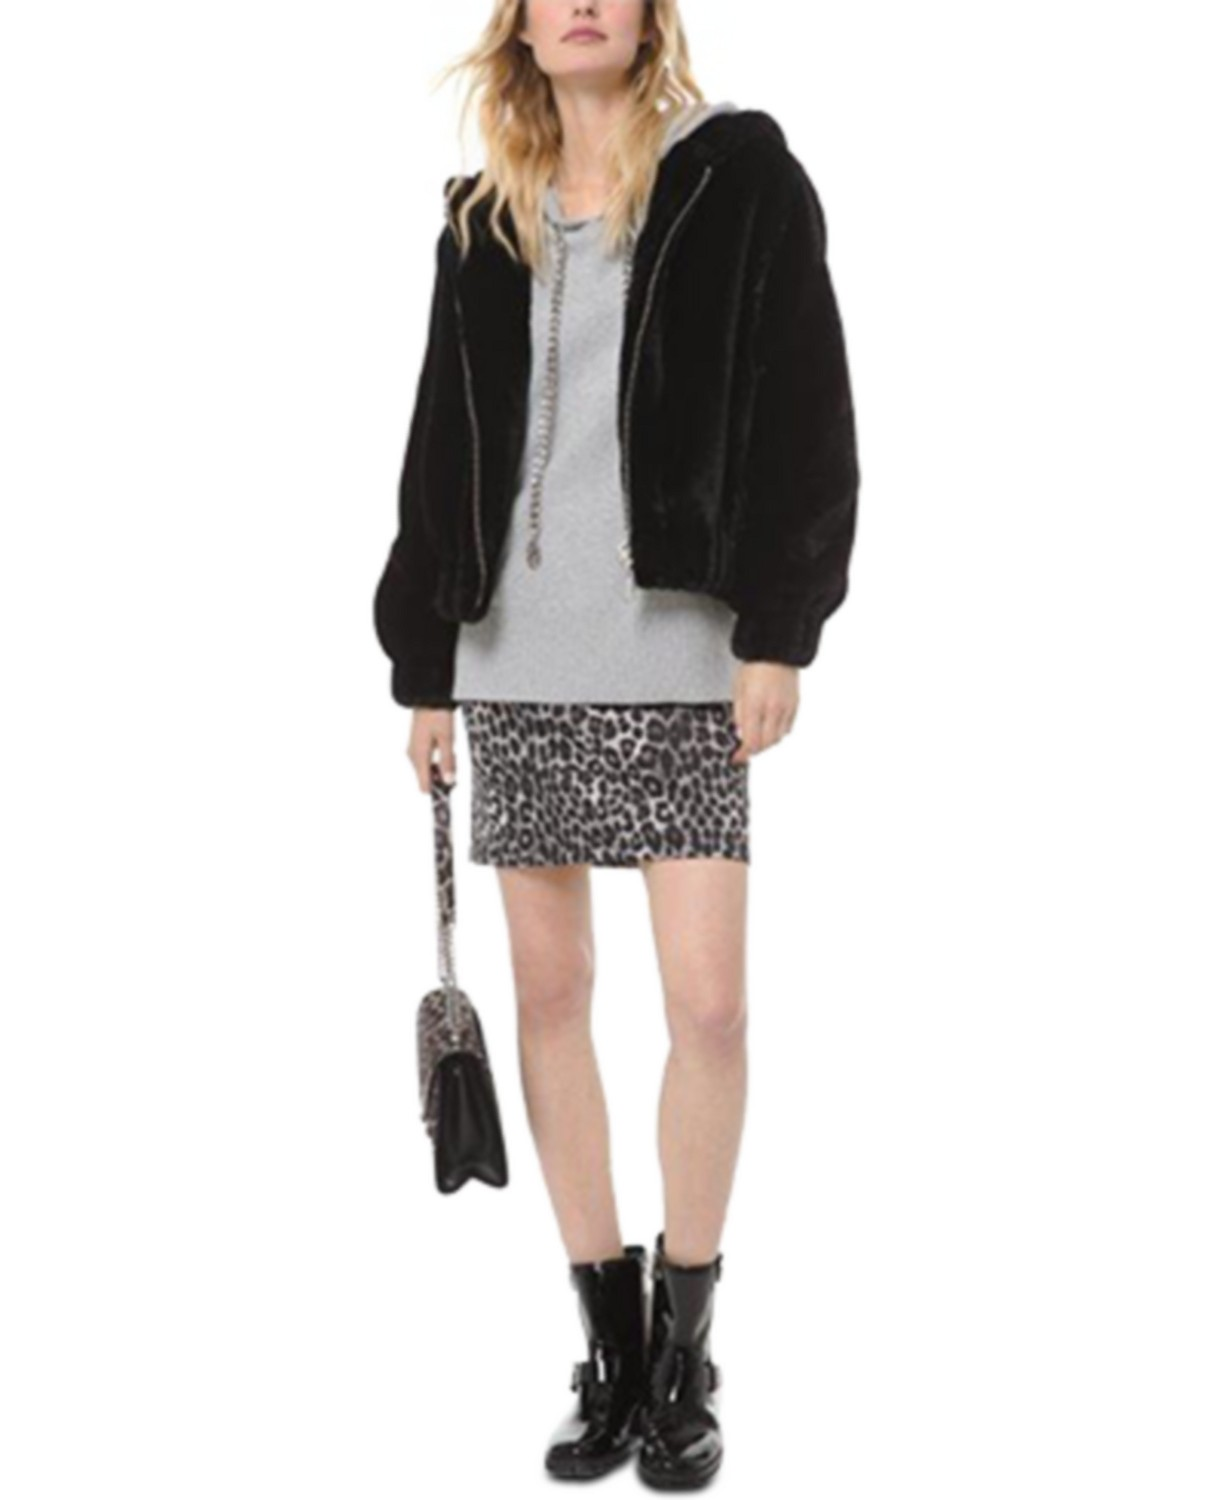 https://www.macys.com/shop/product/michael-michael-kors-hooded-faux-fur-jacket-regular-petite-sizes?ID=9900600&CategoryID=120&isDlp=true#fn=sp%3D1%26spc%3D2268%26ruleId%3D136%7CBOOST%20ATTRIBUTE%7CBOOST%20SAVED%20SET%26kws%3Dmichael%20kors%26searchPass%3DexactMultiMatch%26slotId%3D17